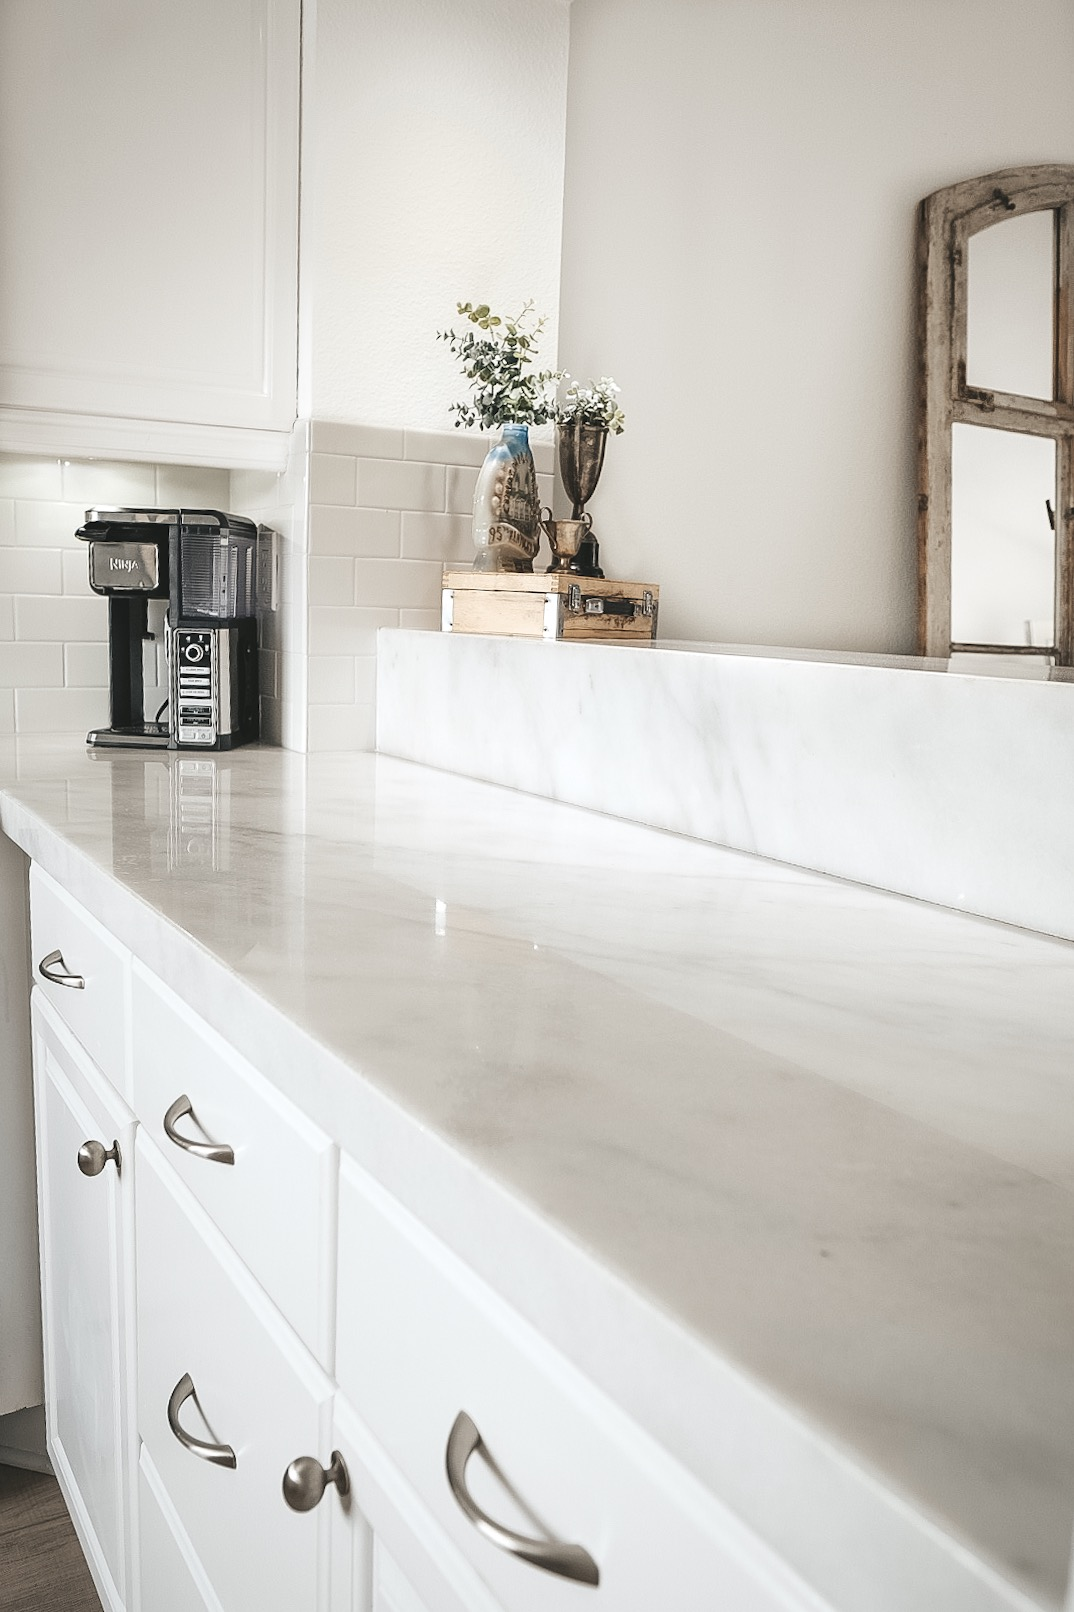 Pros and cons of marble countertops in kitchens and bathrooms.  White kitchen with marble countertops and silver hardware.  Light wood flooring.  Light wood LVP floors. Carrera marble kitchen.